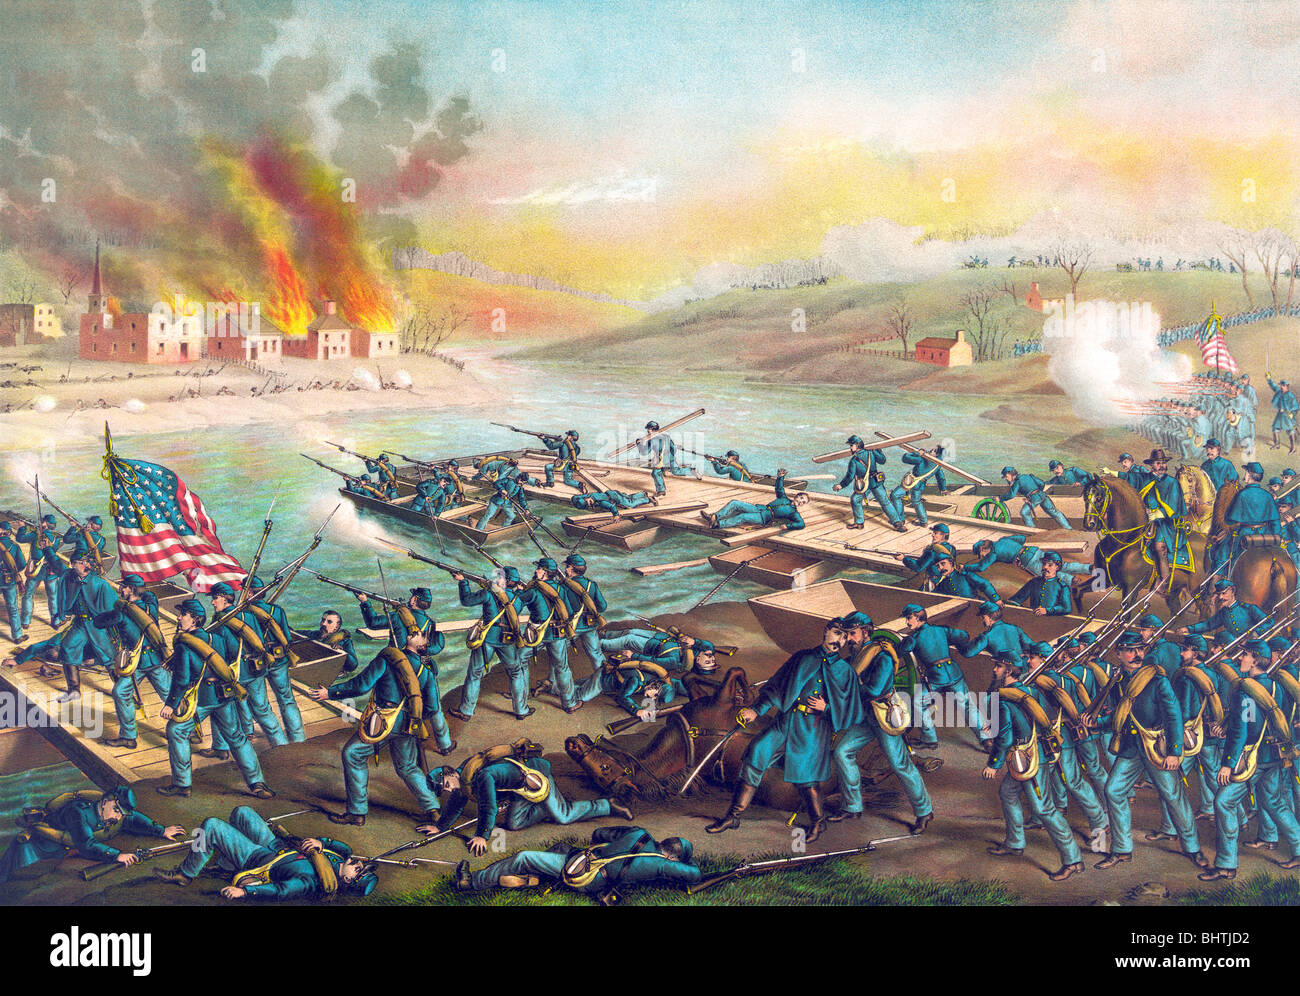 Lithograph colour print circa 1888 depicting the Battle of Fredericksburg during the American Civil War. - Stock Image